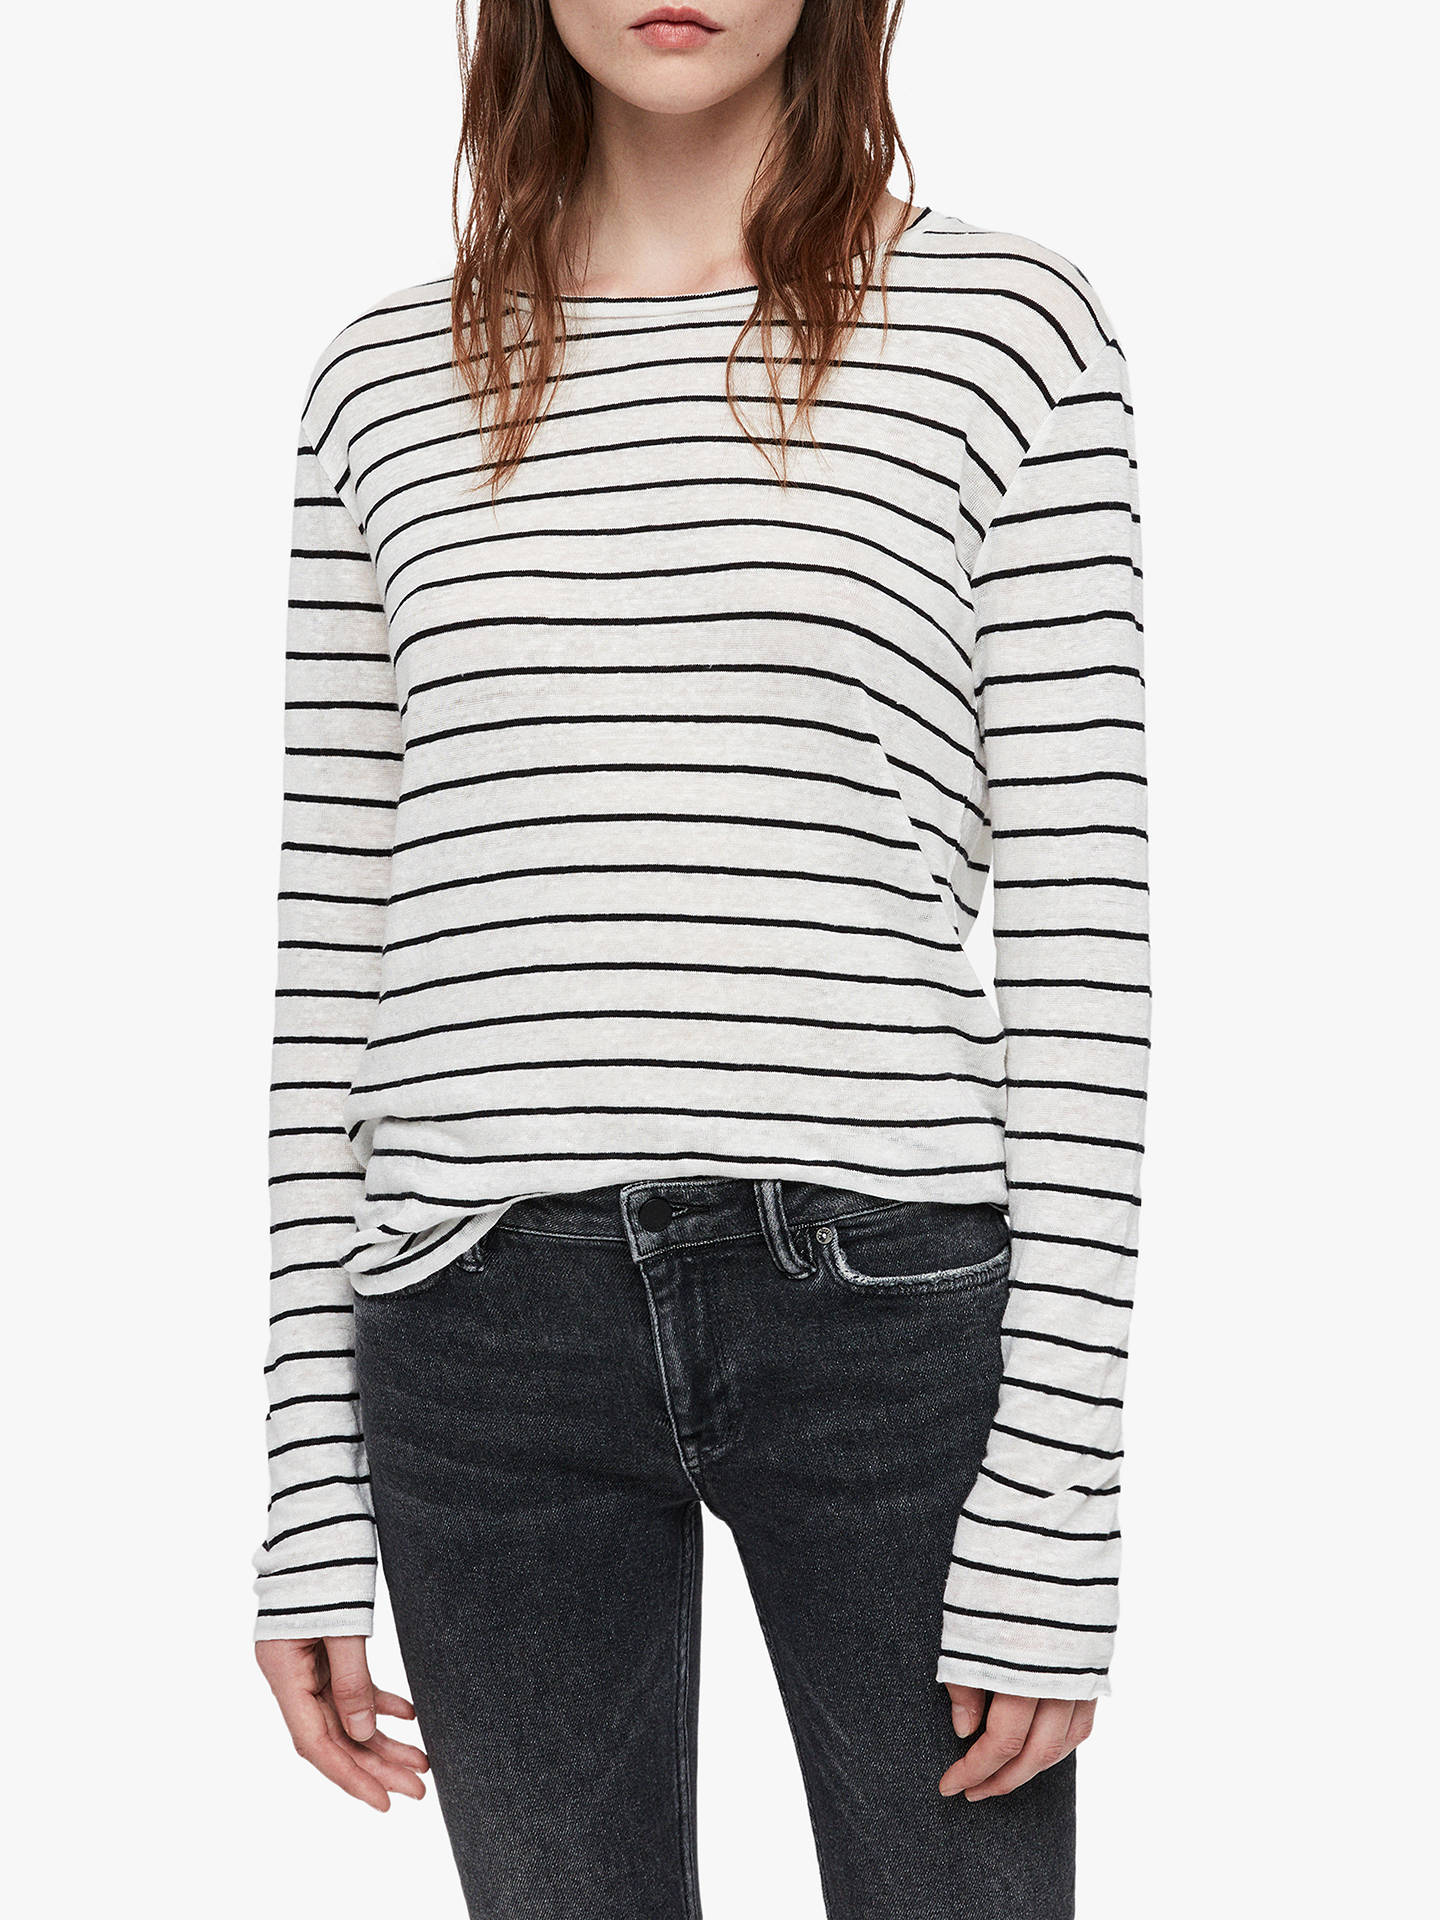 BuyAllSaints Esme Breton Long Sleeve Stripe T-Shirt, Chalk White/Black, XS Online at johnlewis.com